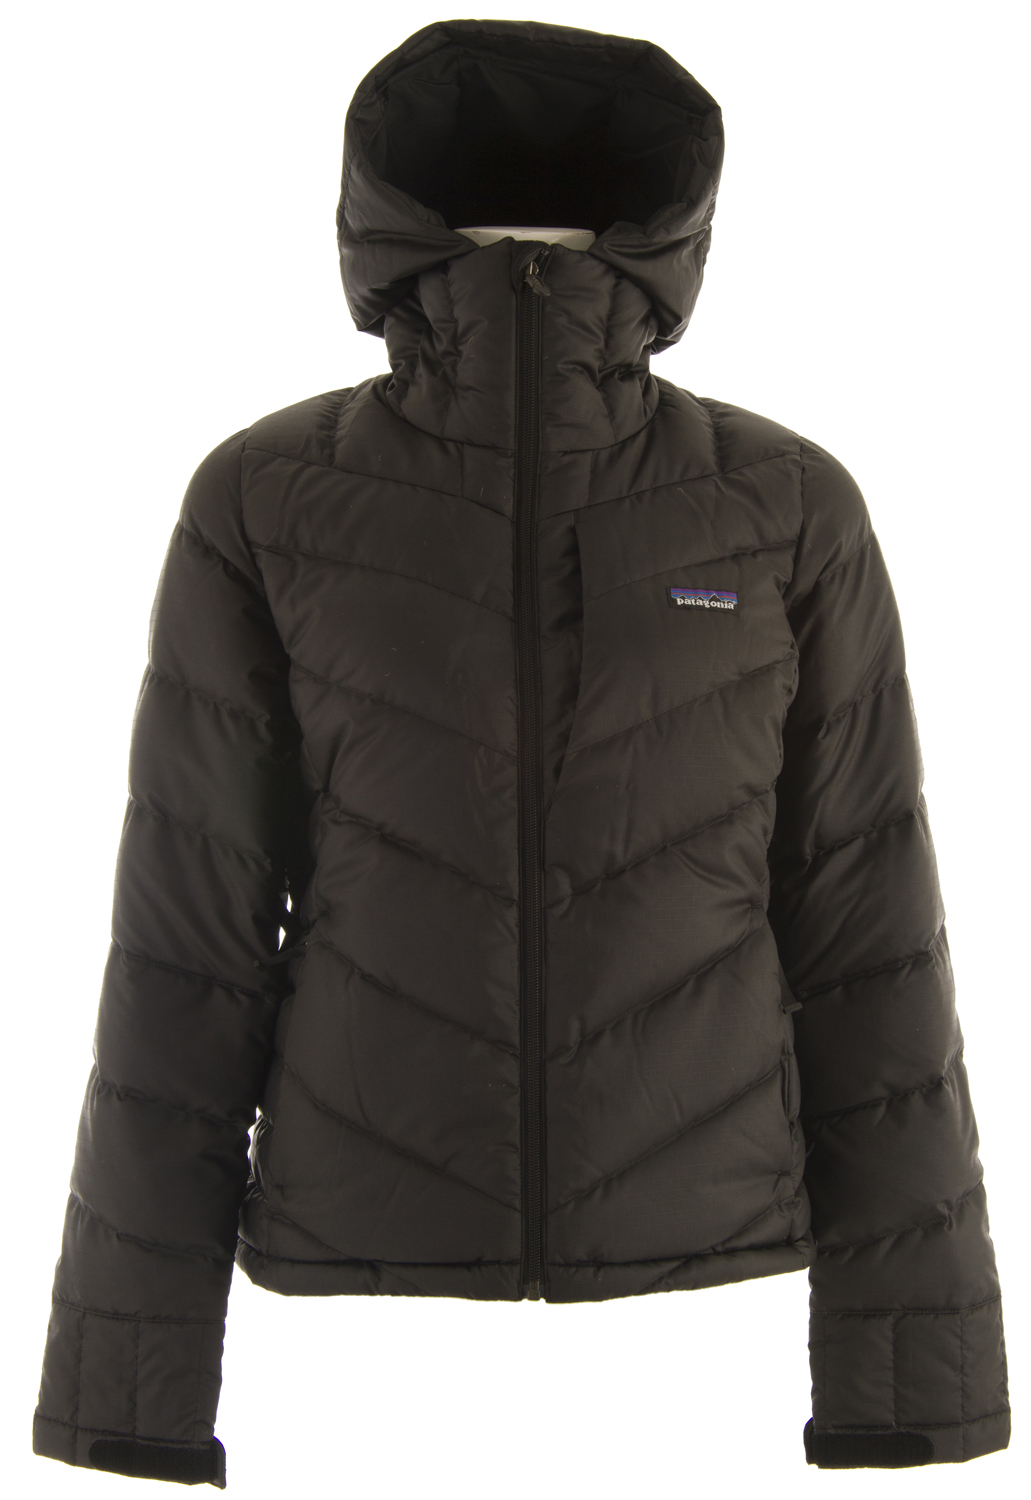 Ski The Patagonia Pipe Down Ski Jacket is a cute down jacket, made of polyester ripstop, and insulated with 600-fill-power goose down provides warmth for all-day riding.Key Features of the Patagonia Pipe Down Ski Jacket: Soft polyester ripstop shell with a light water-resistant coating, and a Deluge DWR (durable water repellent) finish to resist moisture and wet snow 600-fill-power goose down insulation is plush, compressible and very warm Fixed helmet-compatible hood with single-hand drawcord adjustment; high fleece-lined collar protects against wind and snow, keeps neck cozy and warm Pit zips quickly release heat; articulated arms improve mobility Removable powder skirt is adjustable and fully featured; webbing loops connect to any Patagonia Ski/Snowboard Pants to keep the snow out and the skirt down Pockets: Two handwarmers, one chest, one interior drop-in and one interior zippered; includes secure, interior media pocket with cable routing Hem can cinch for extra chilly days; drawcord exits into hand pockets for easy adjustments Regular fit (25.2 oz) 714 g fabric: 2.1-oz 100% microdenier 100% polyester ripstop with a light water-resistant coating and a Deluge DWR finish. Lining: 2-oz 100% polyester plain weave. Insulation: 600-fill-power premium European goose down. - $208.95